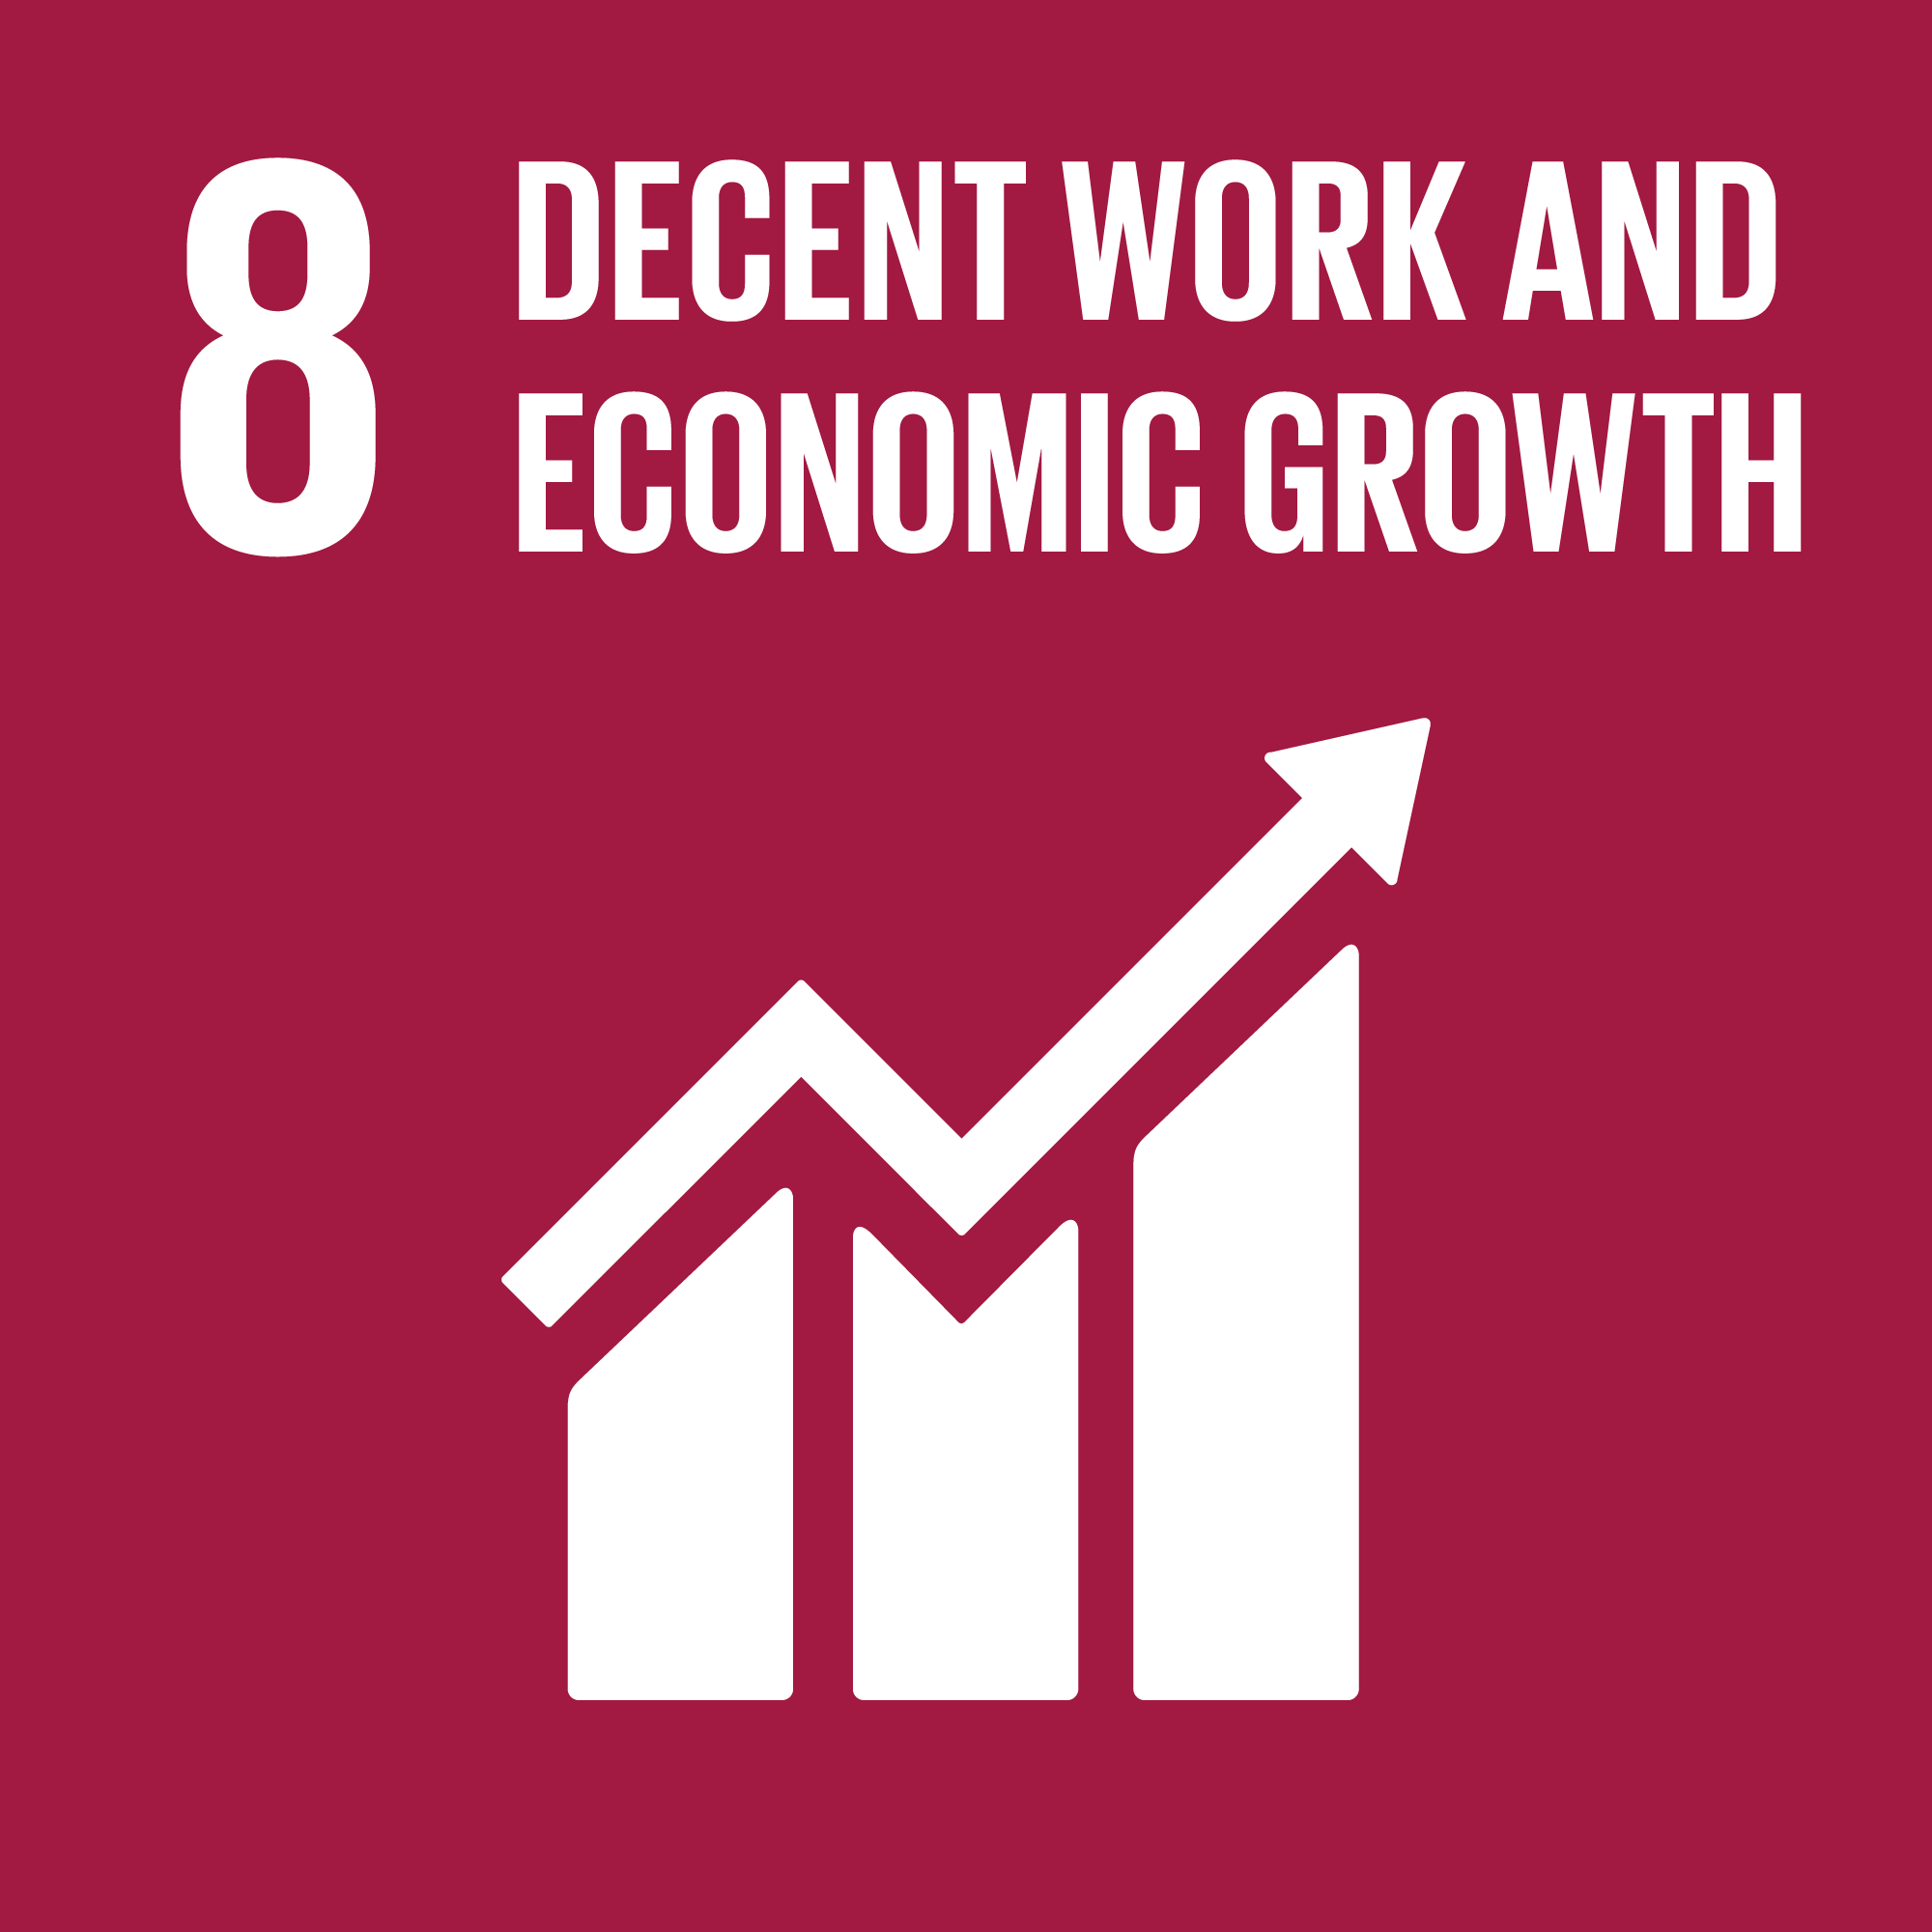 Icon for the global goals number 8, Decent work and economic growth